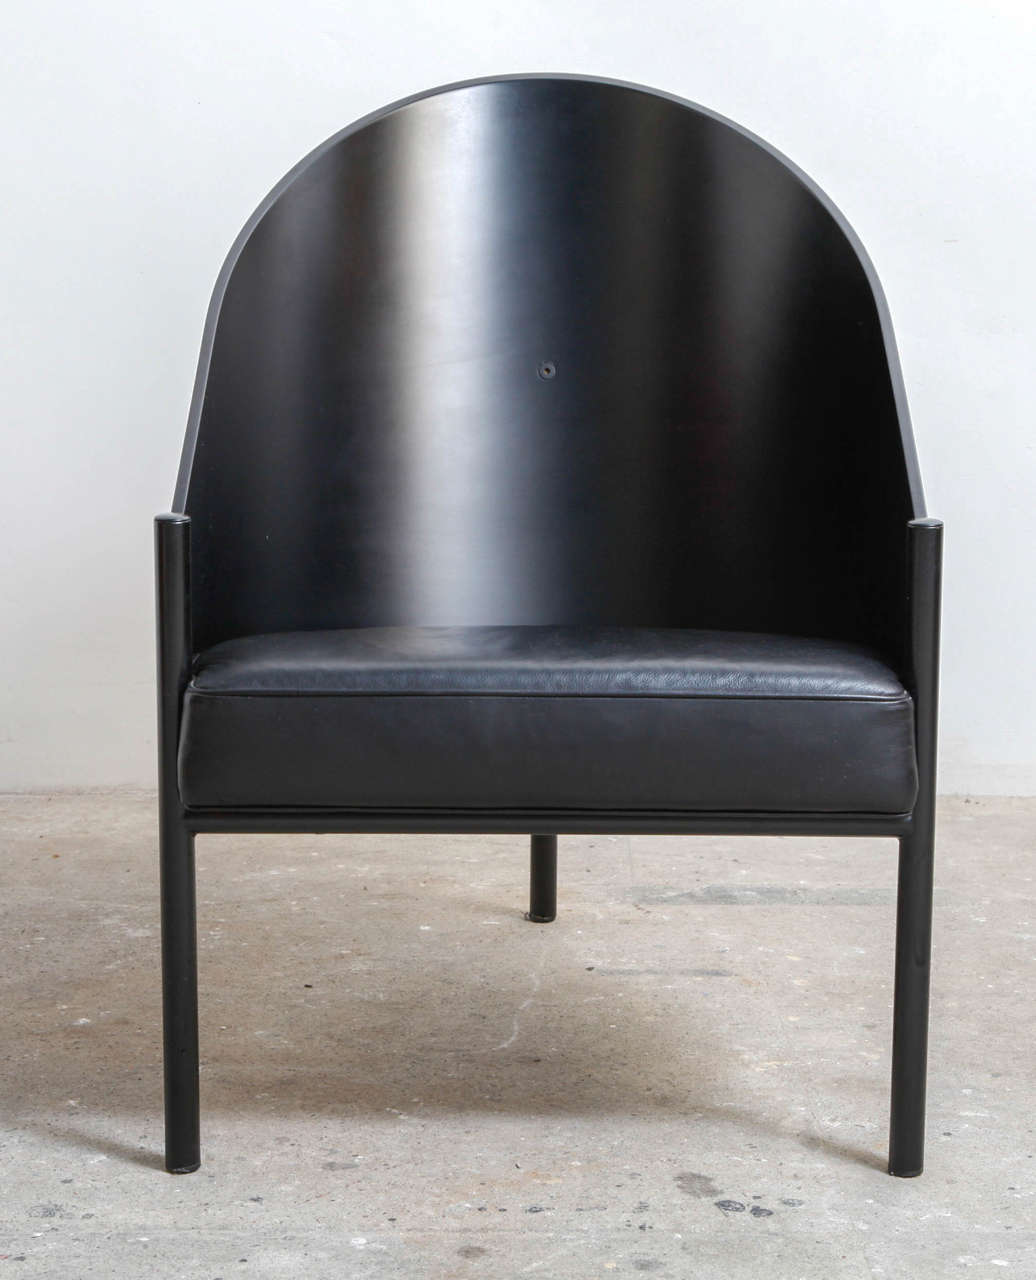 Philippe Starck Pratfall Easy Chair By Aleph Ubik At 1stdibs